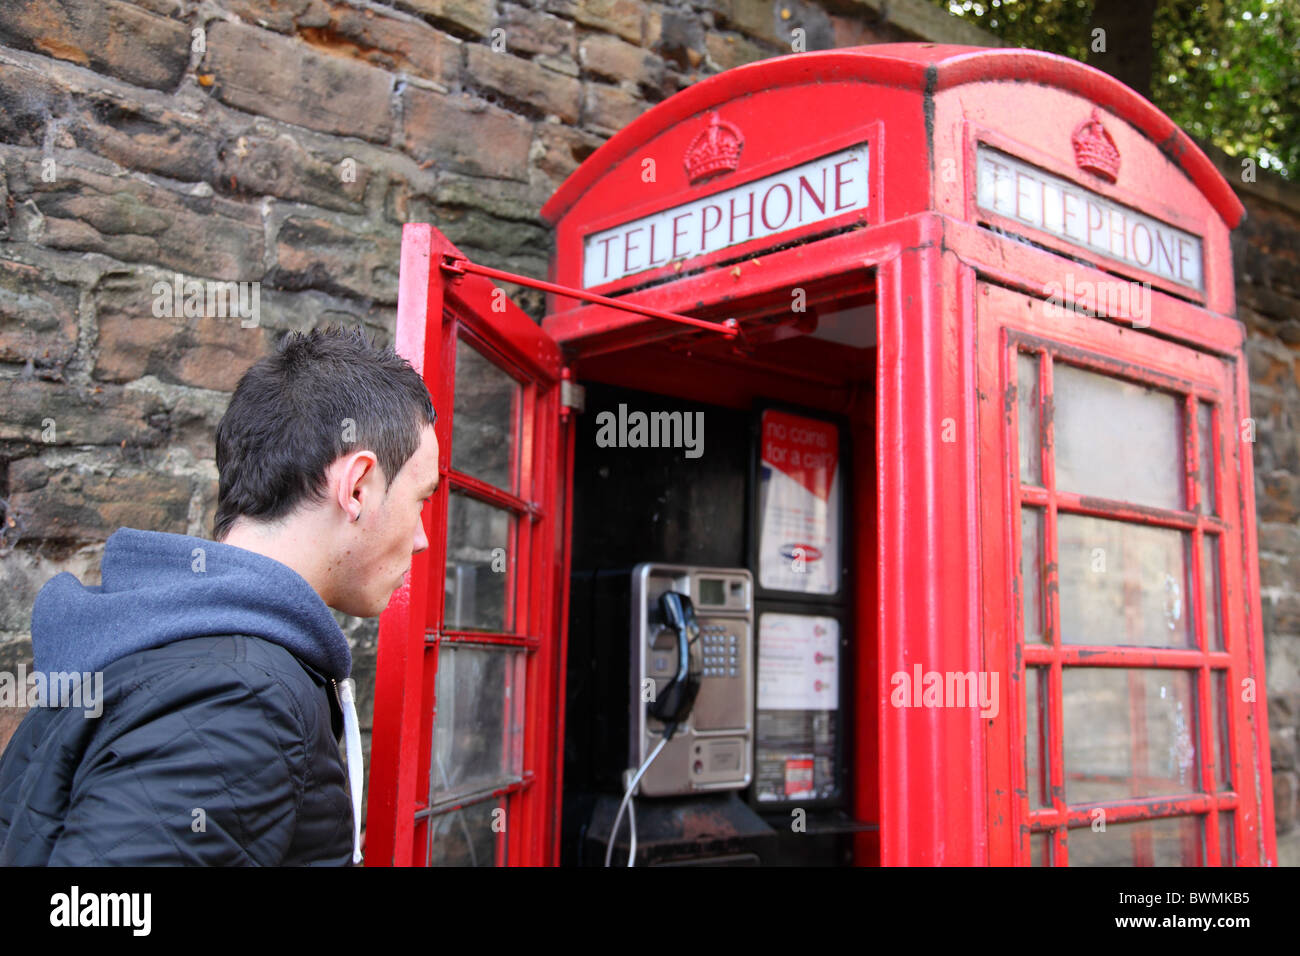 A red telephone box in a U.K. city. - Stock Image